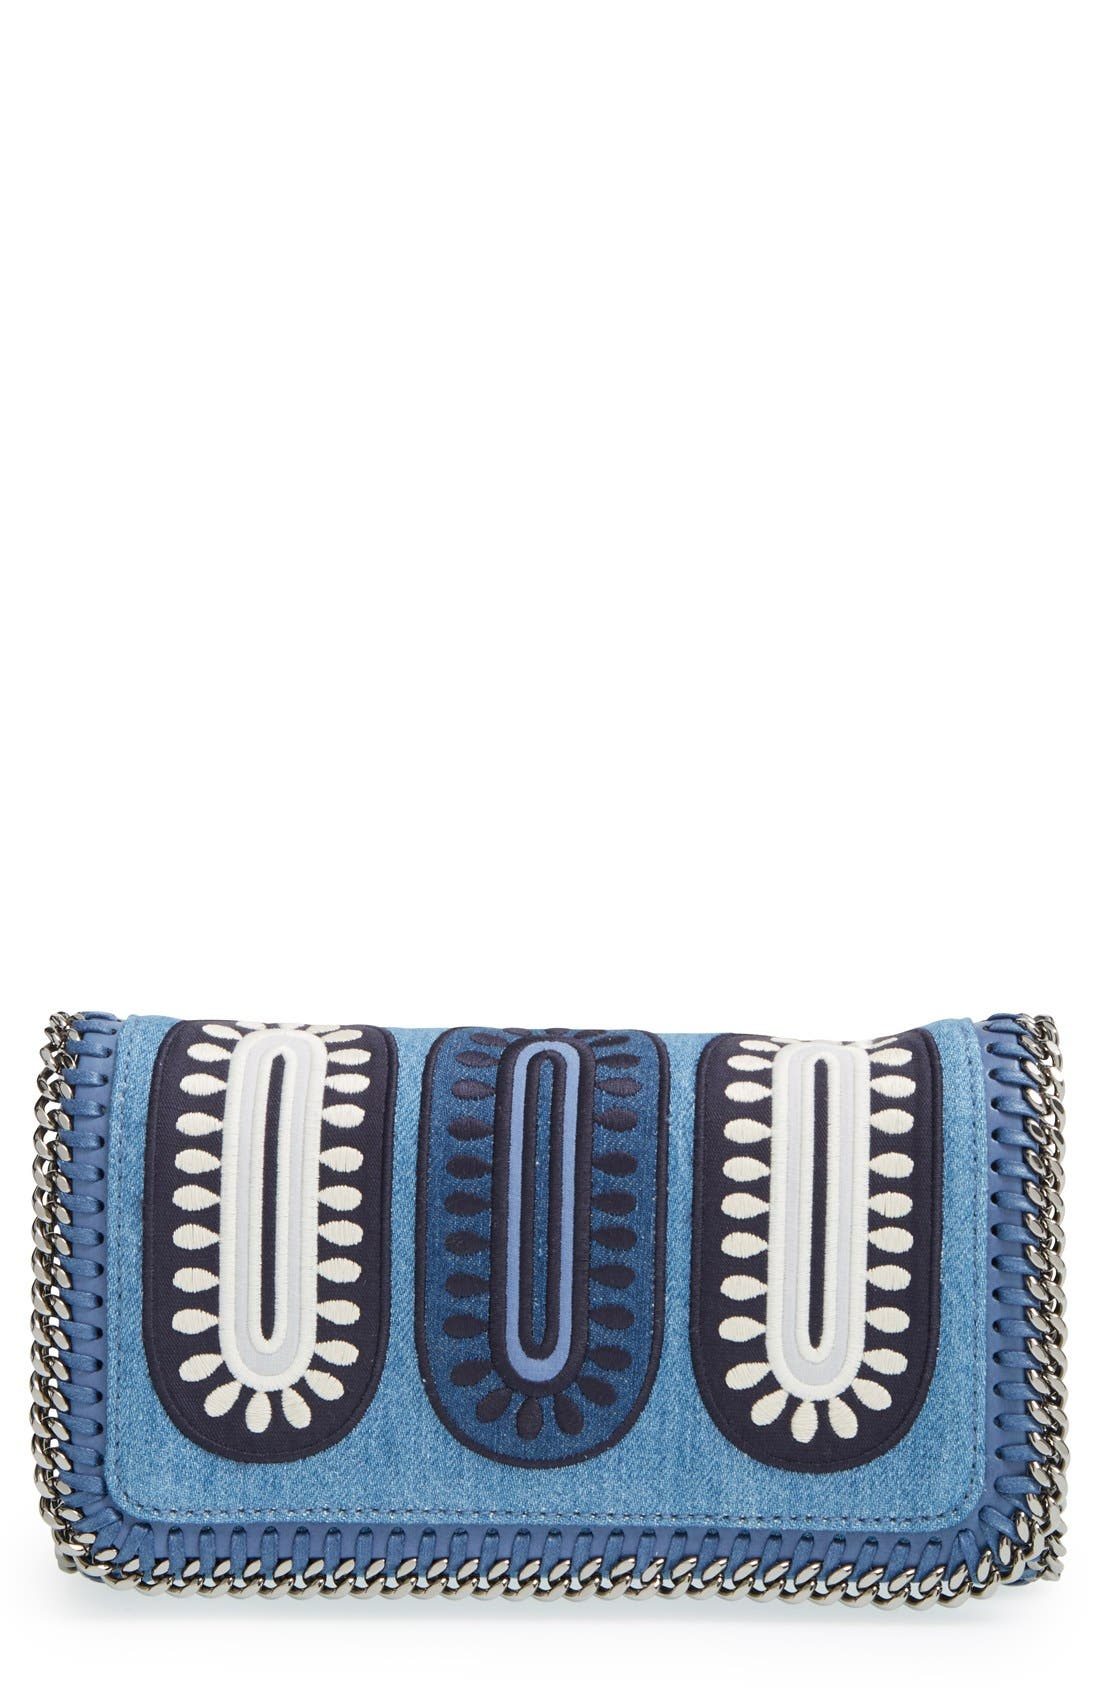 Main Image - Stella McCartney 'Falabella - Adorned' Denim Crossbody Bag